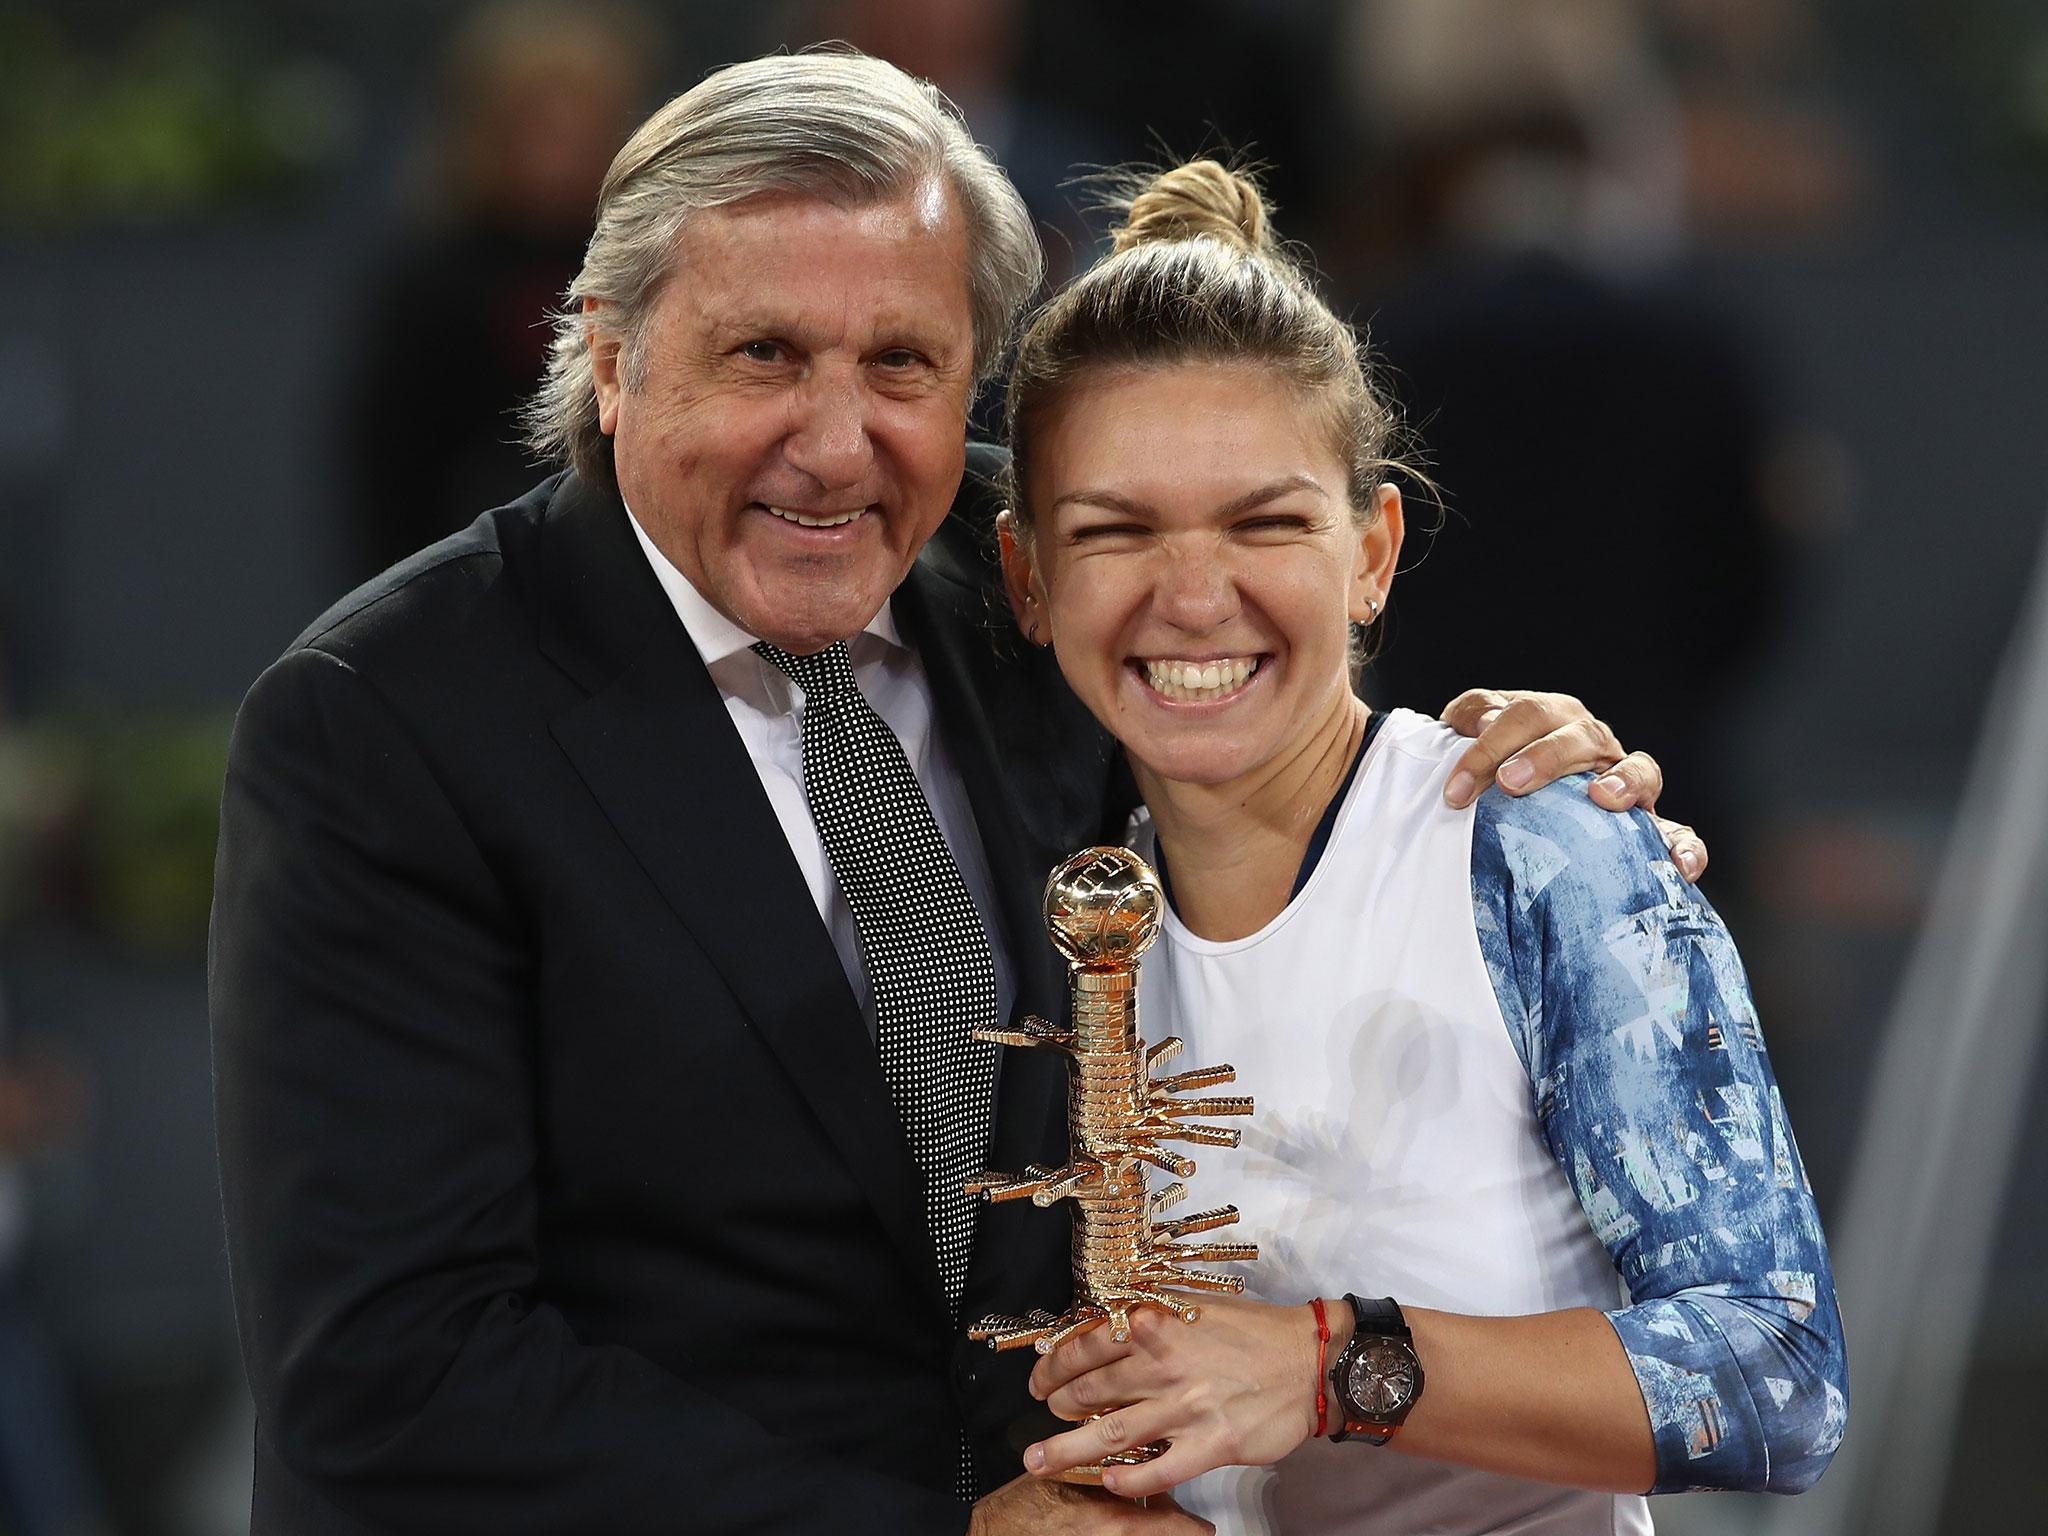 Ilie Nastase s appearance on court at Madrid Open final cast a